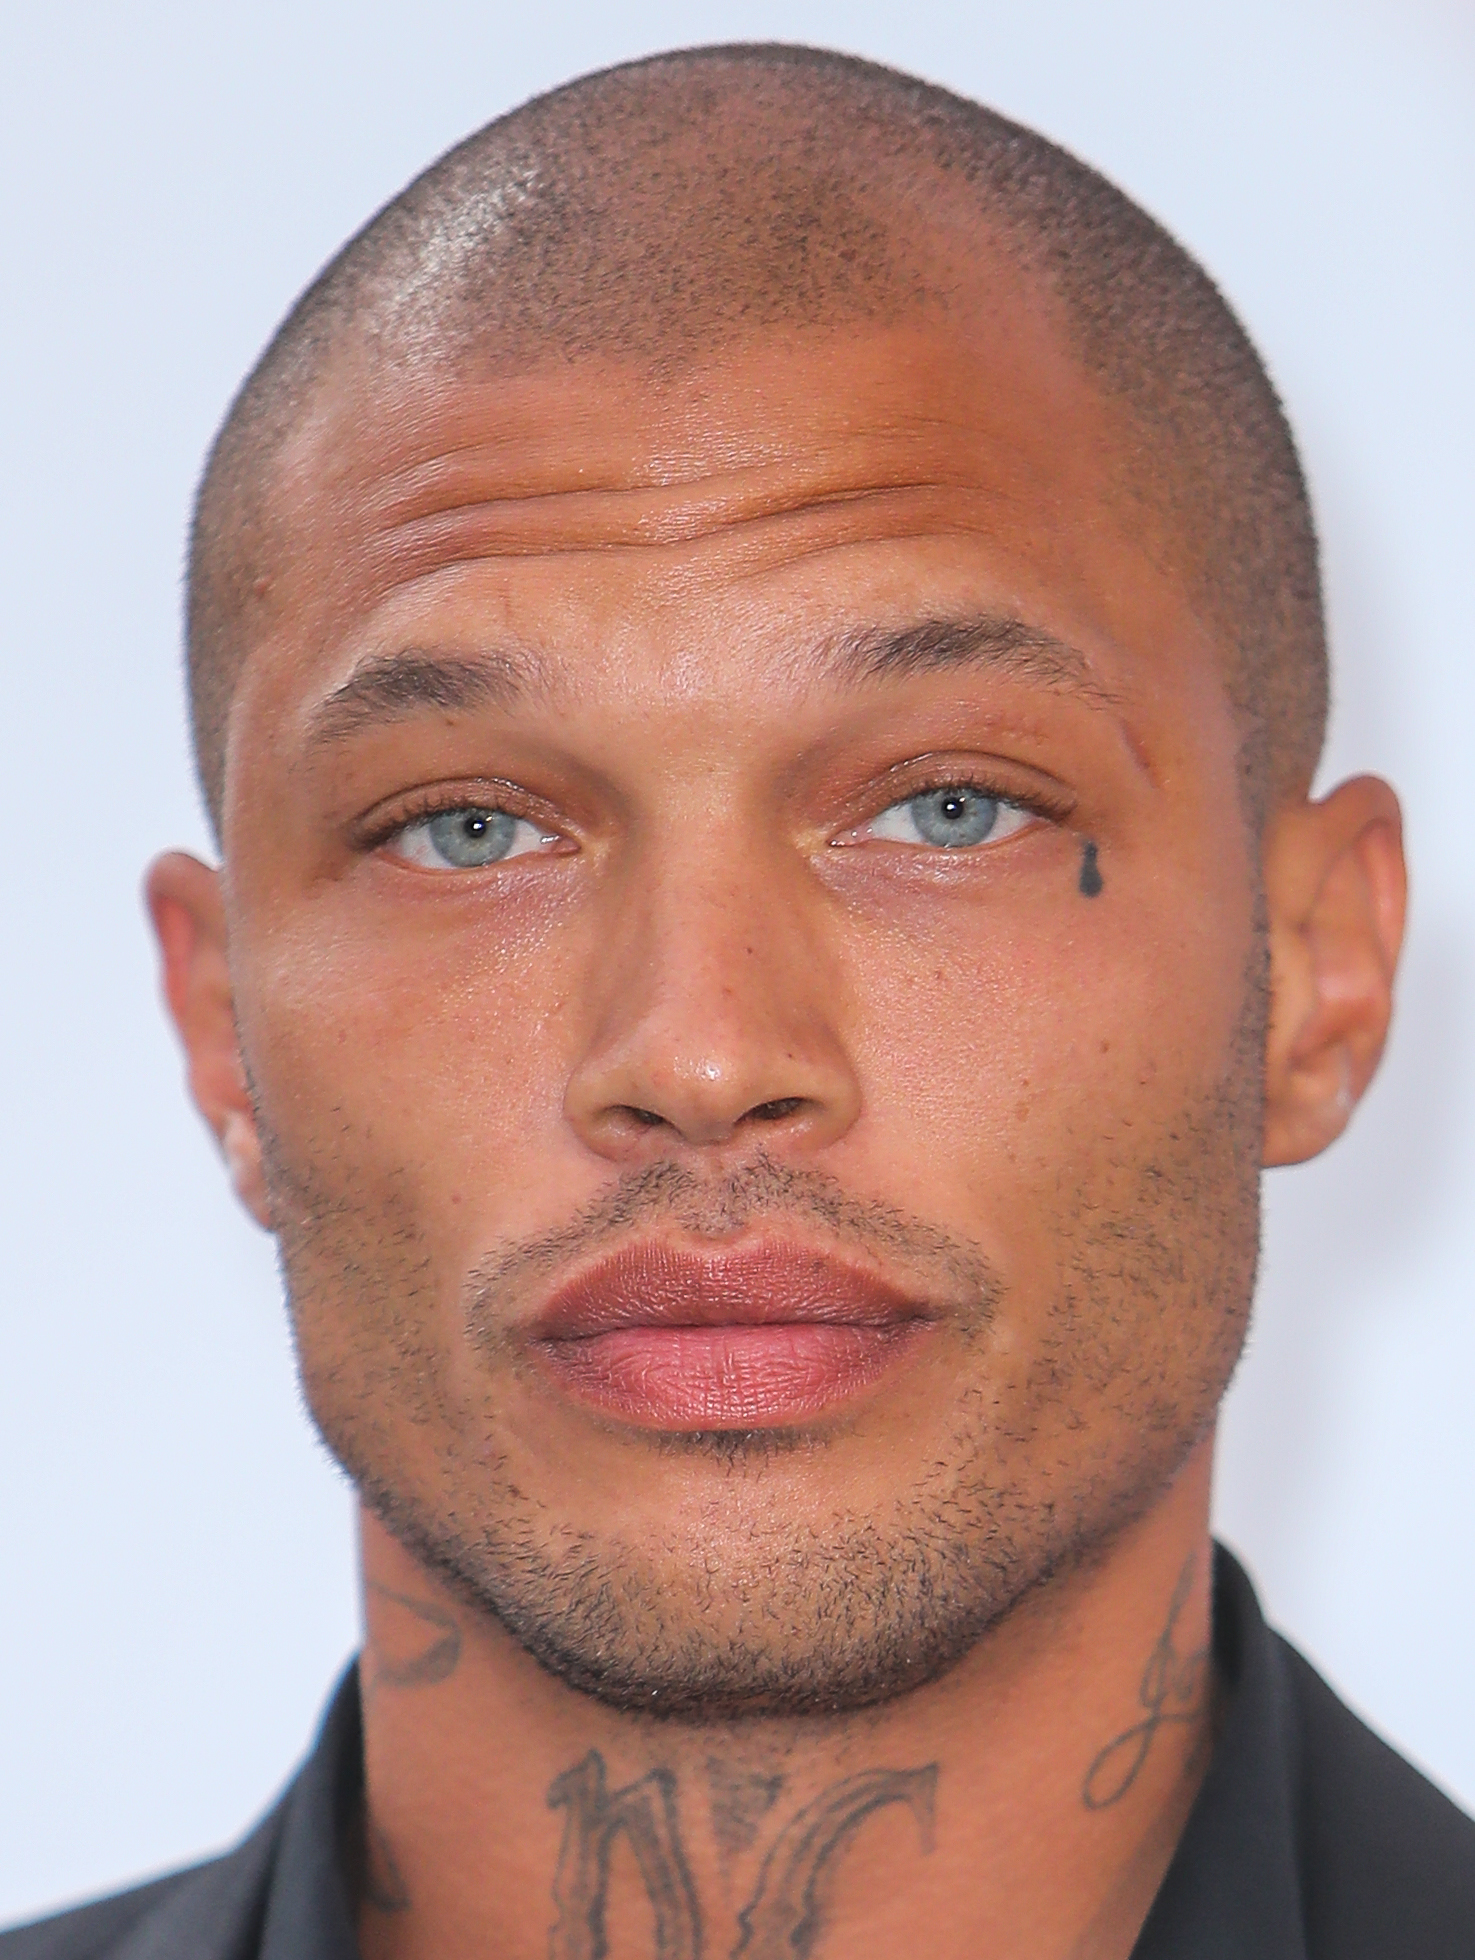 Arrivals for the 24th annual amfAR fundraiser during the Cannes Film Festival at the Hotel Eden Roc in Cap D'Antibes  Featuring: Jeremy Meeks Where: Cap D Antibes, United Kingdom When: 25 May 2017 Credit: John Rainford/WENN.com